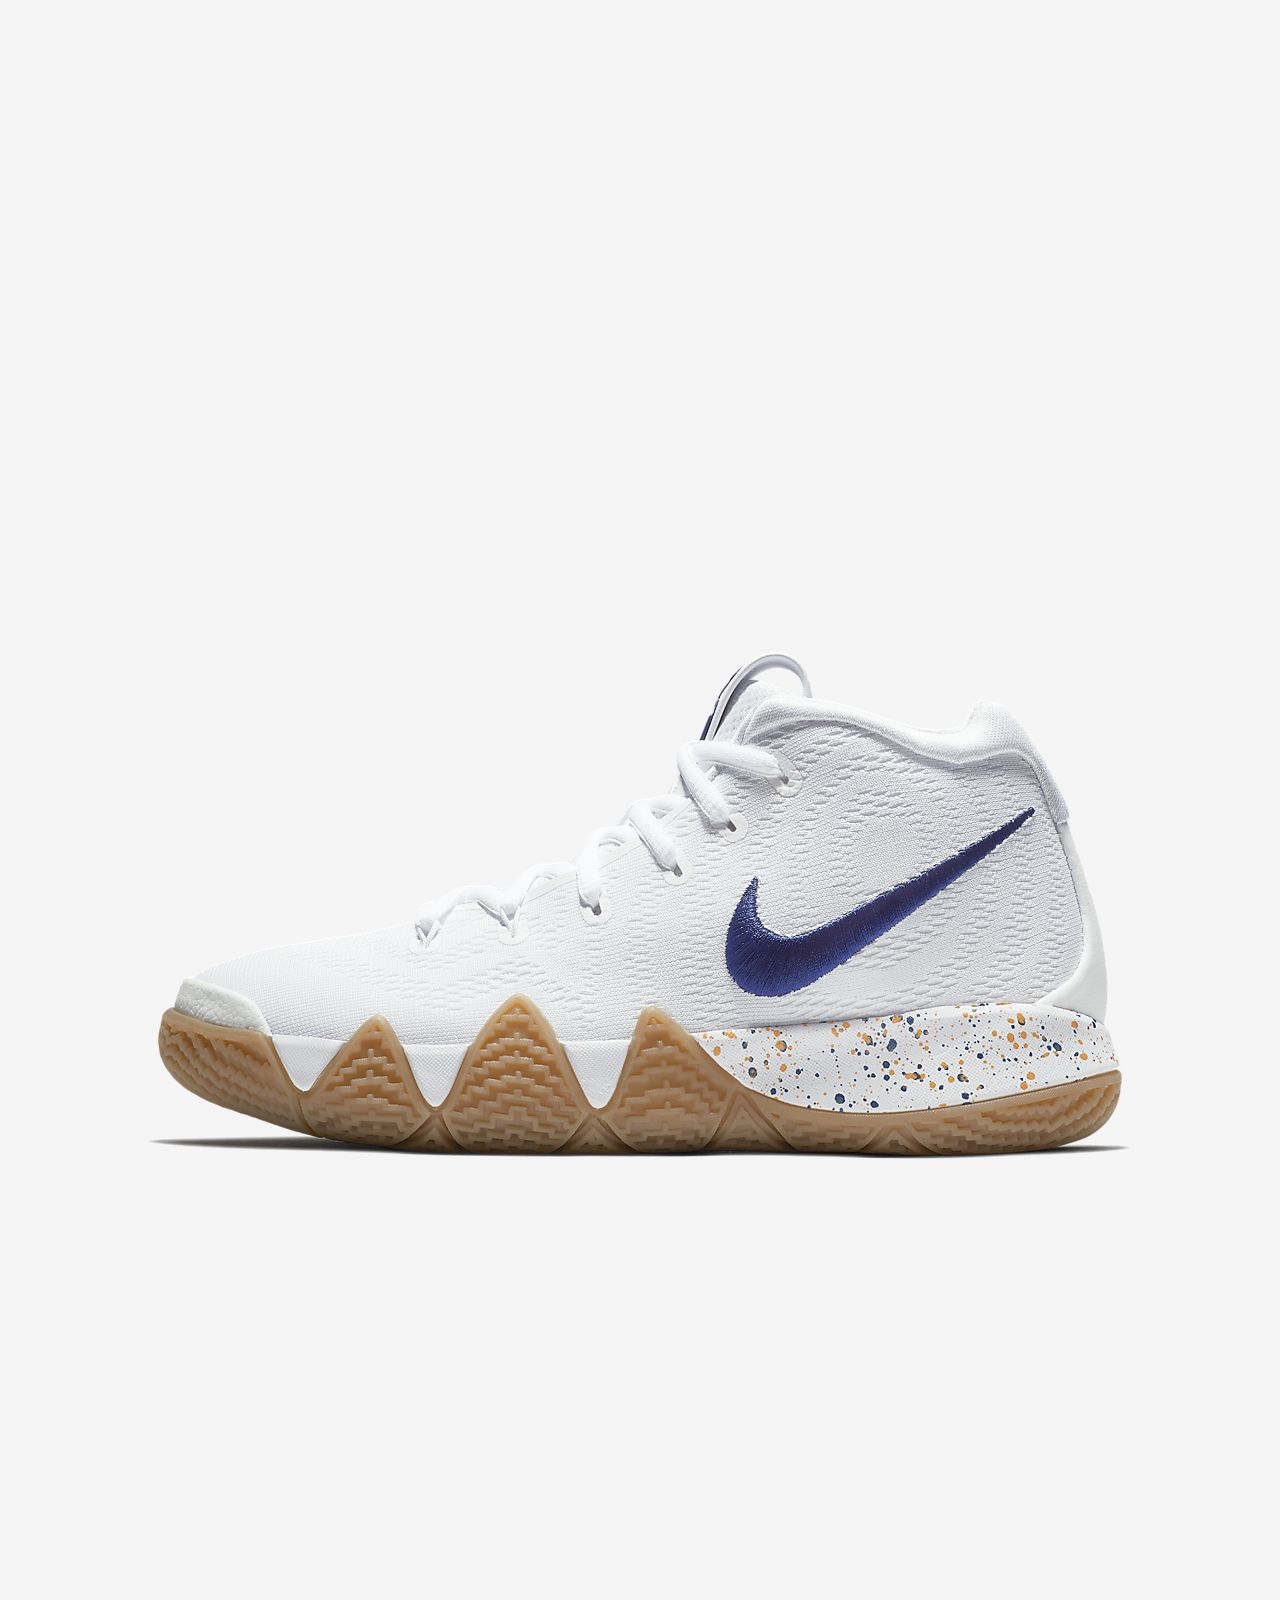 6b65202f6868 ... white 09999 53a46 czech kyrie 4 older kids basketball shoe 468e9 4ba0c  inexpensive nike classic cortez sneaker women sale newest kyrie ...